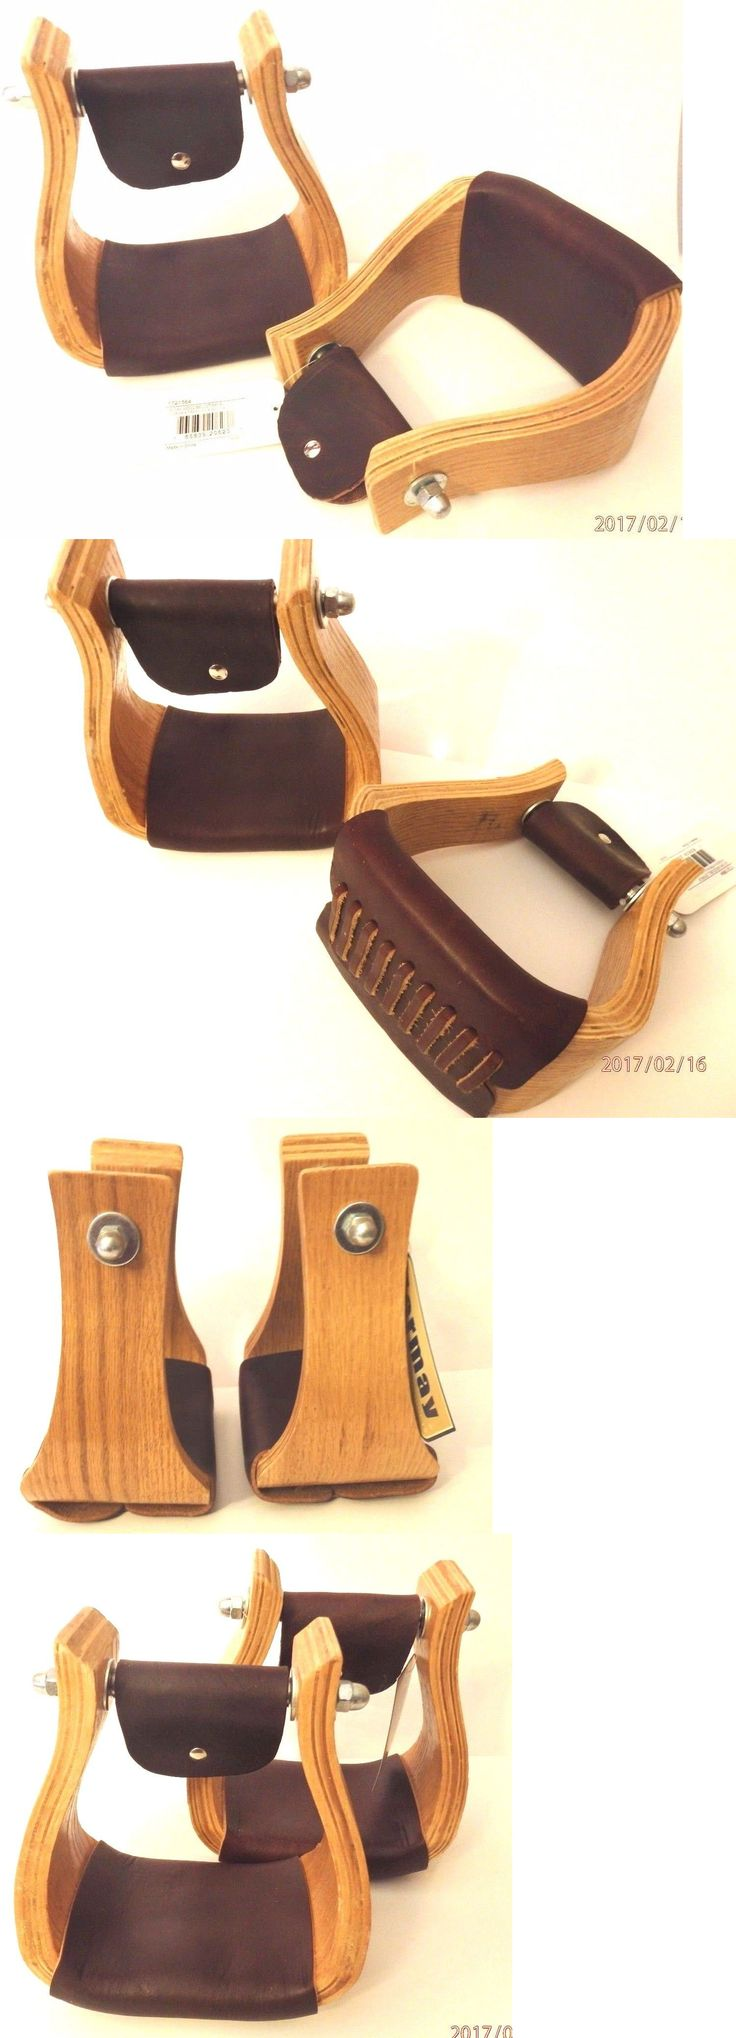 Stirrups 183412: Formay 1721564 Oak Wood 3 Neck Bell Stirrups 4 Tread,Western Horse Tack -> BUY IT NOW ONLY: $56.95 on eBay!